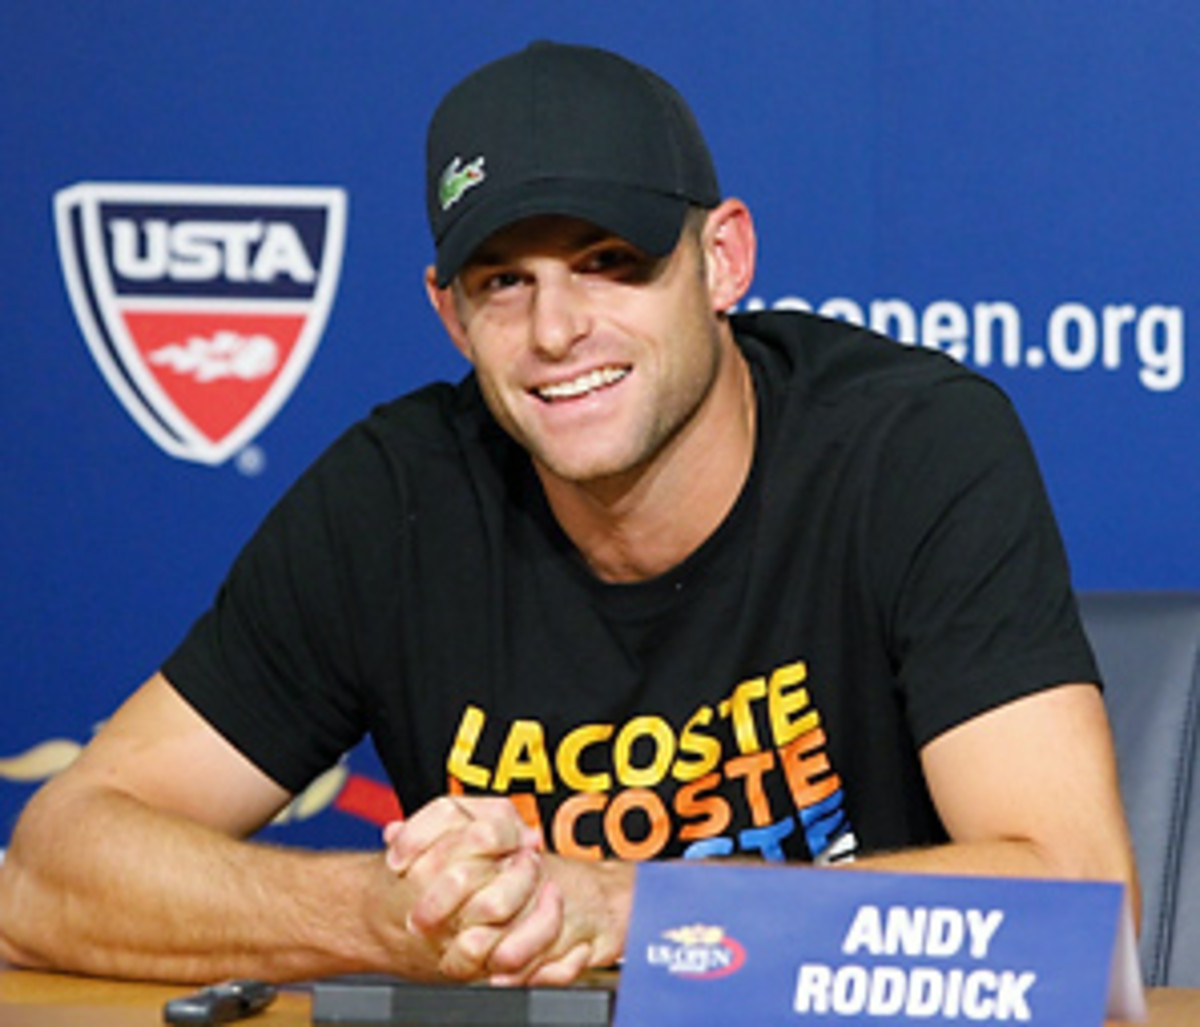 Andy Roddick's tennis career will close at the U.S. Open, the site of his biggest triumph.